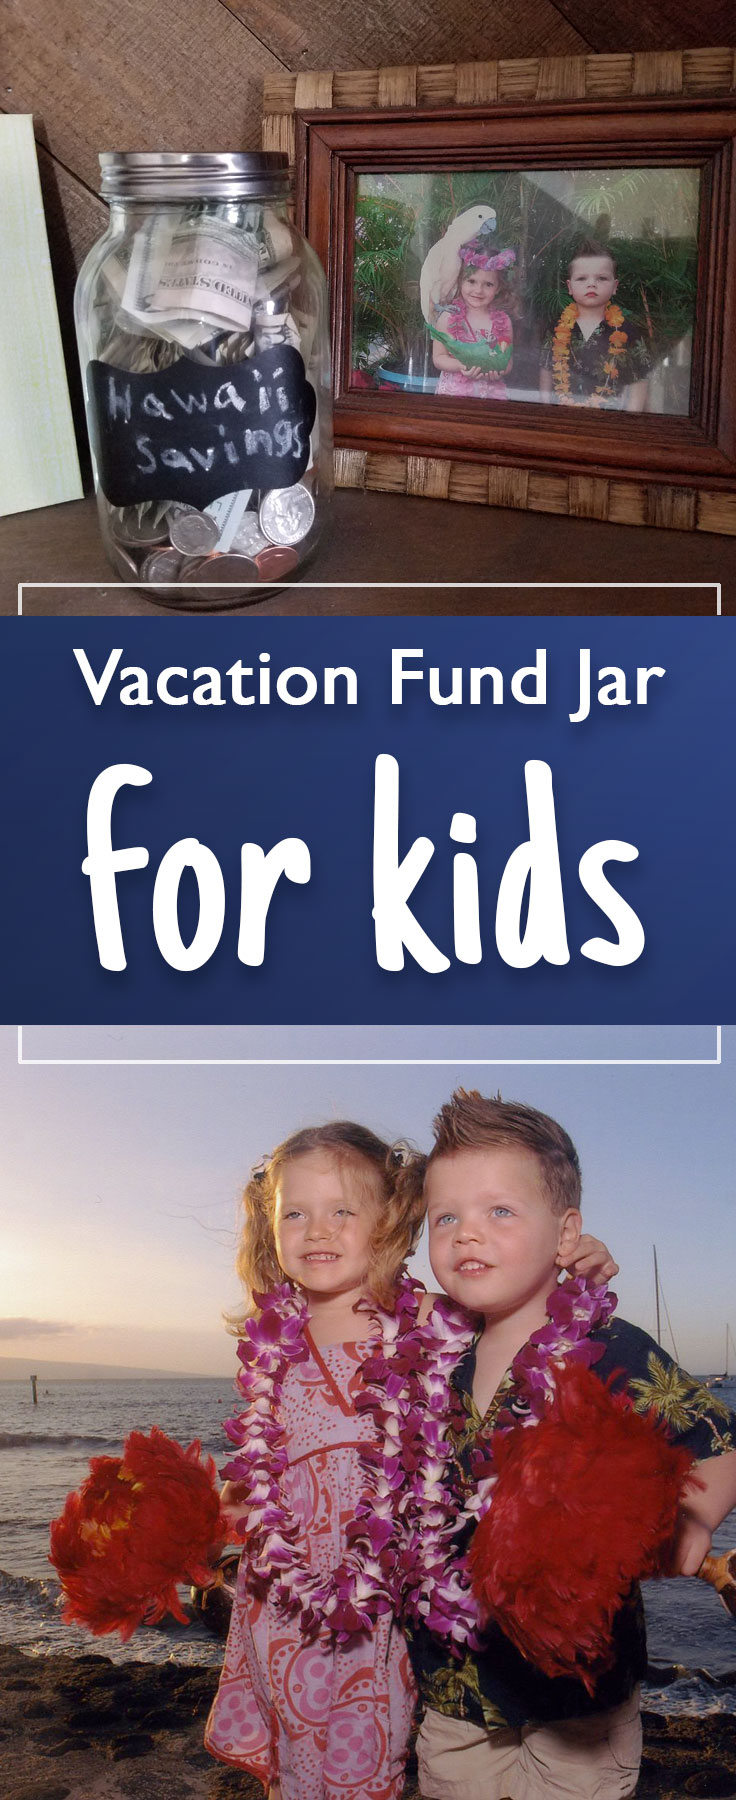 Why We Think A Vacation Fund Jar Is So Important For Kids